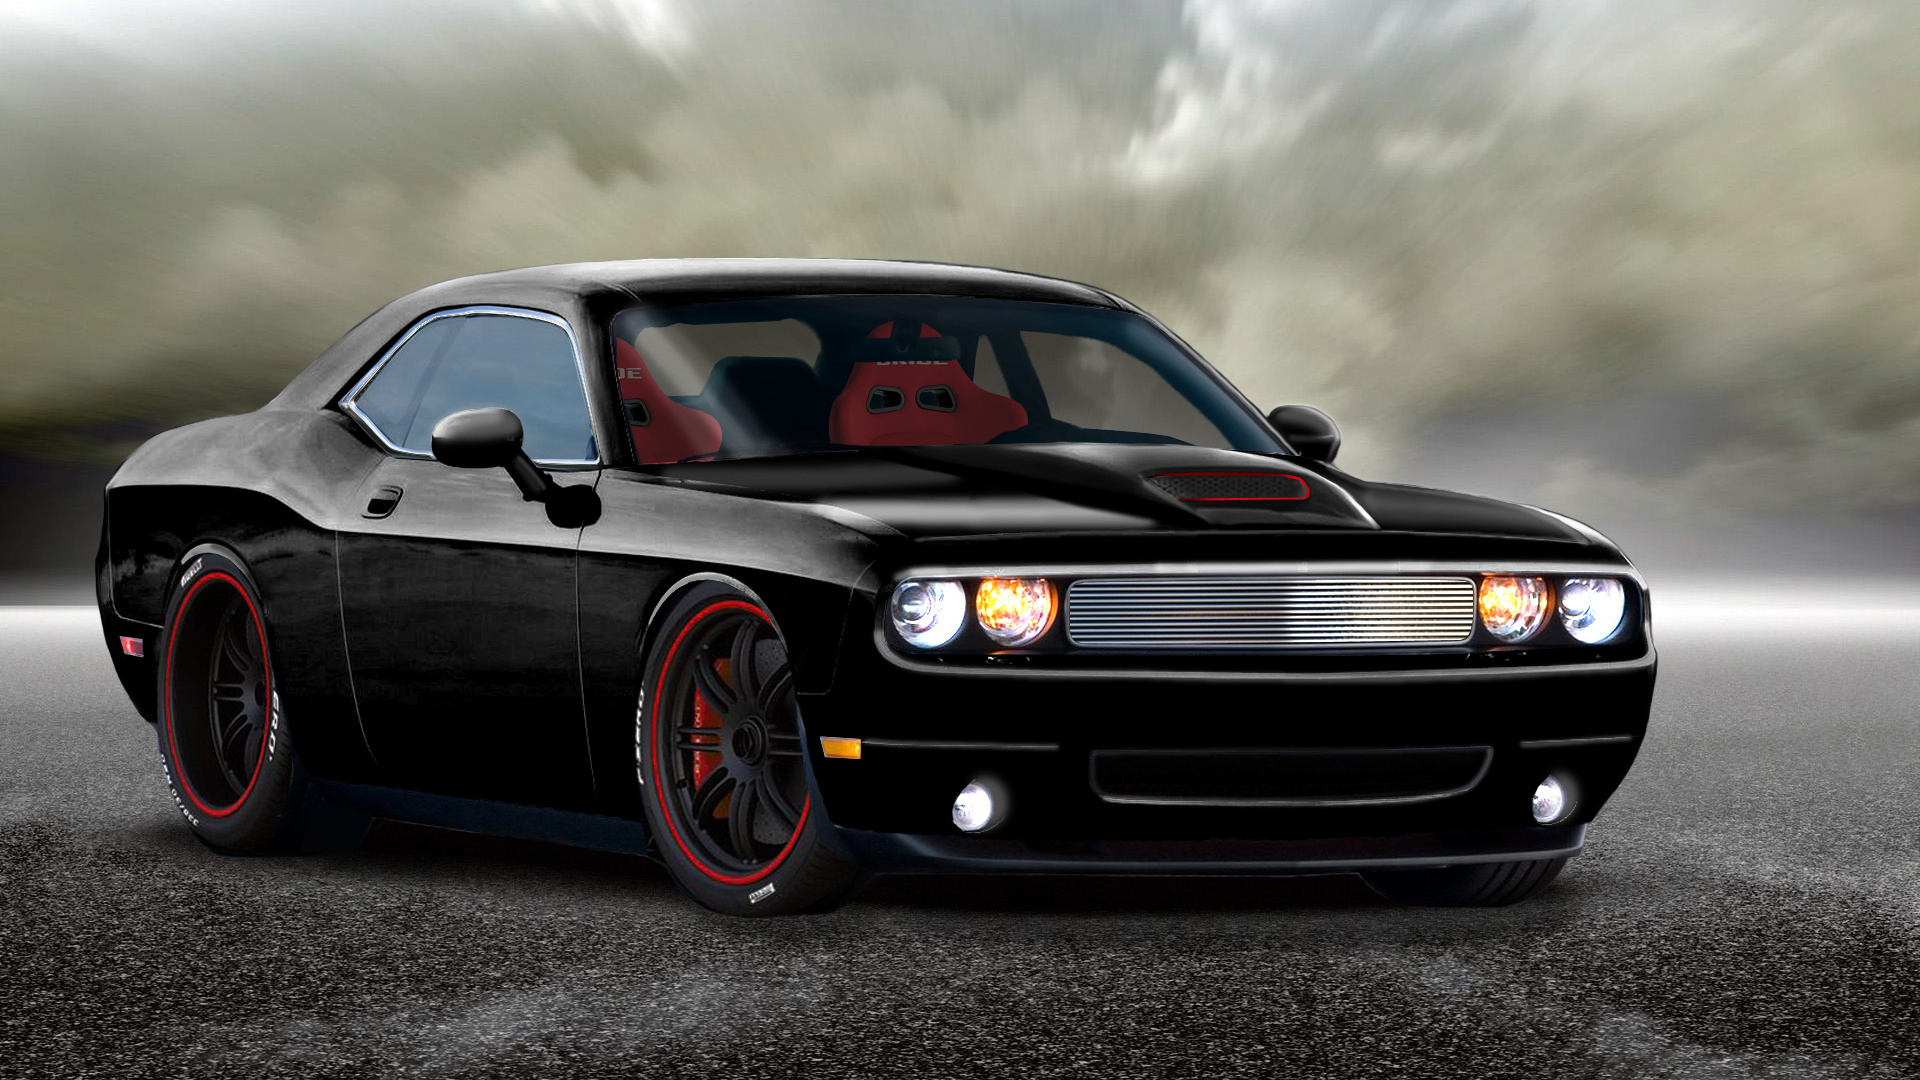 dodge challenger pro tour custom flickr photo sharing. Black Bedroom Furniture Sets. Home Design Ideas